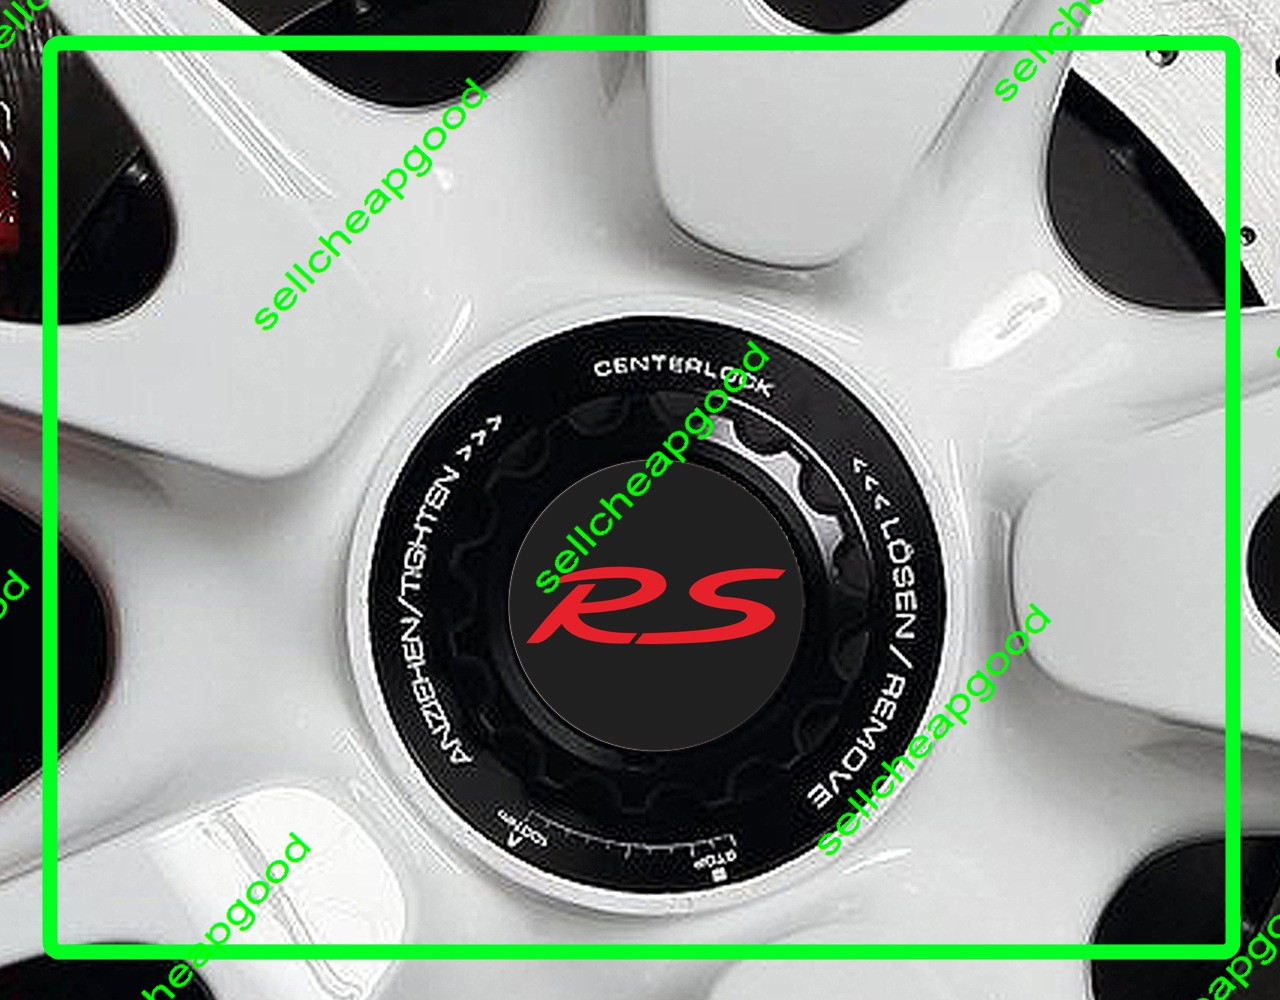 porsche gt2 gt3 rs alloy wheel rim center cap cover decals. Black Bedroom Furniture Sets. Home Design Ideas